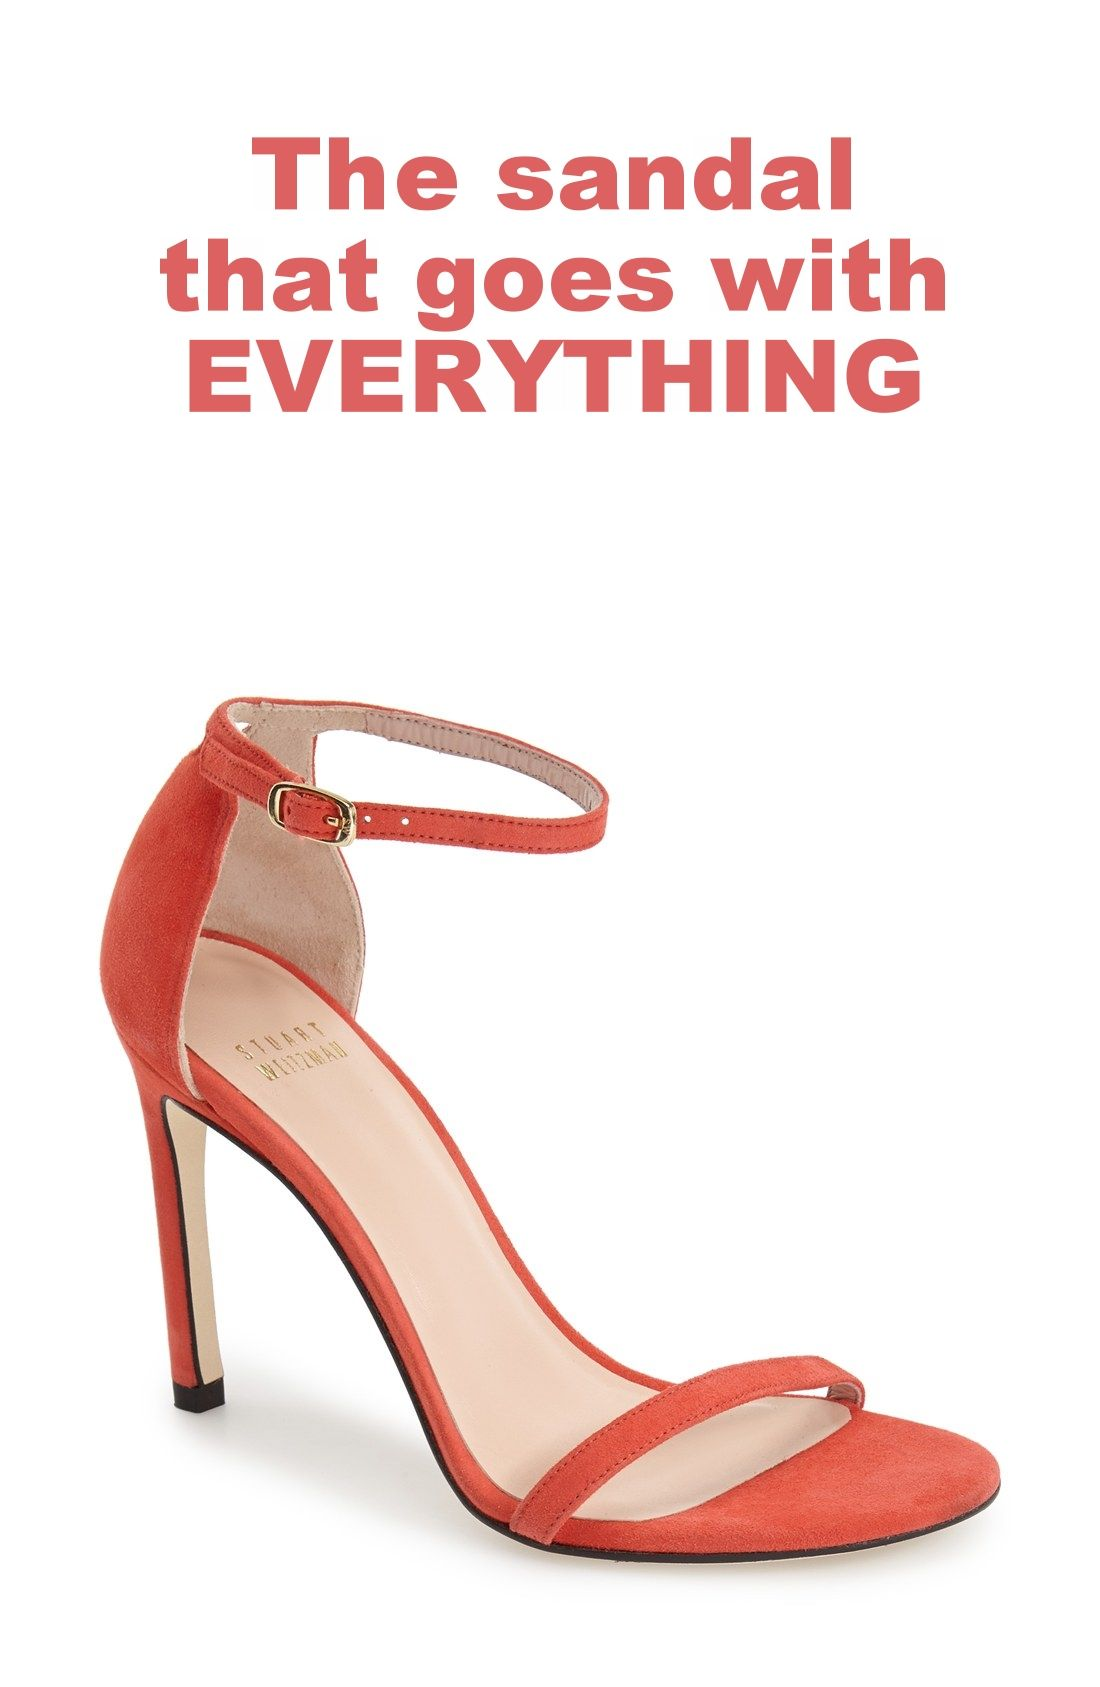 This Stuart Weitzman sandal seriously goes with everything! It's the perfect heel height, is flattering on everyone and is a favorite shoe among editors, stylists and celebrities. Gorgeous, comfortable and affordable, too! Comes in 8 colors.